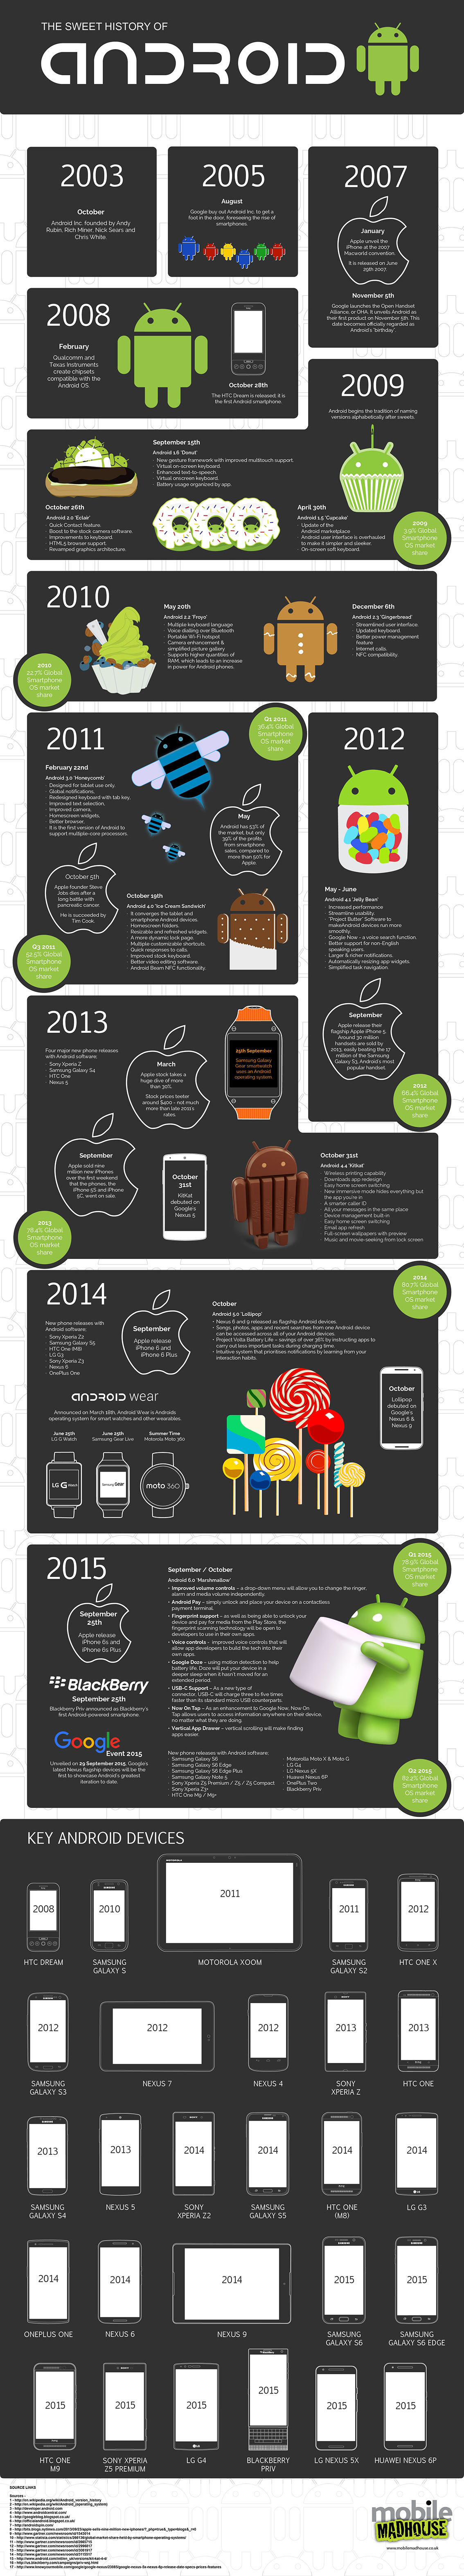 History of Android OS: From Cupcake to Marshmallow ...